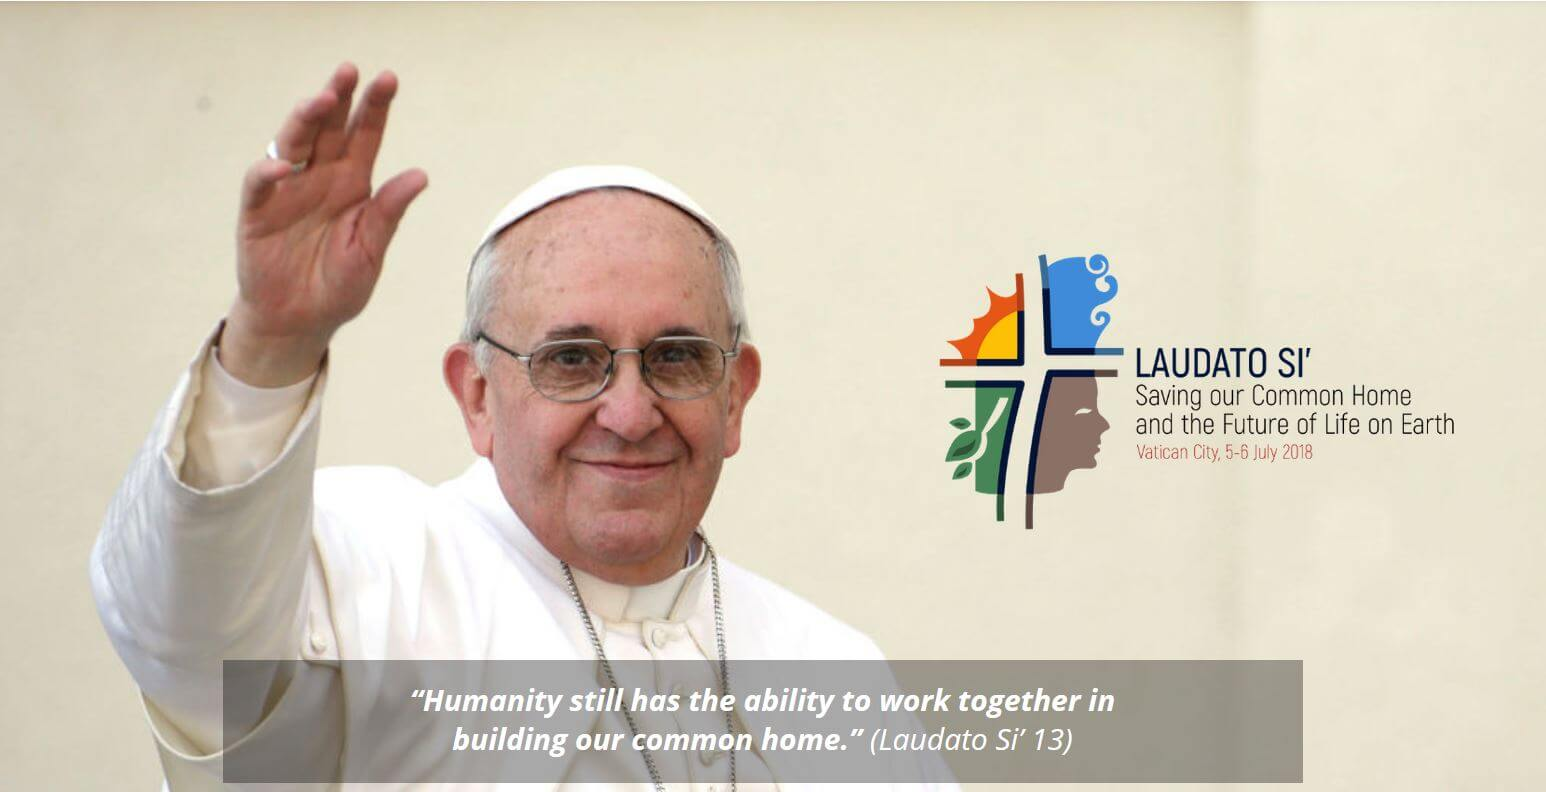 laudato_si_conference_rome_5-6_july2018